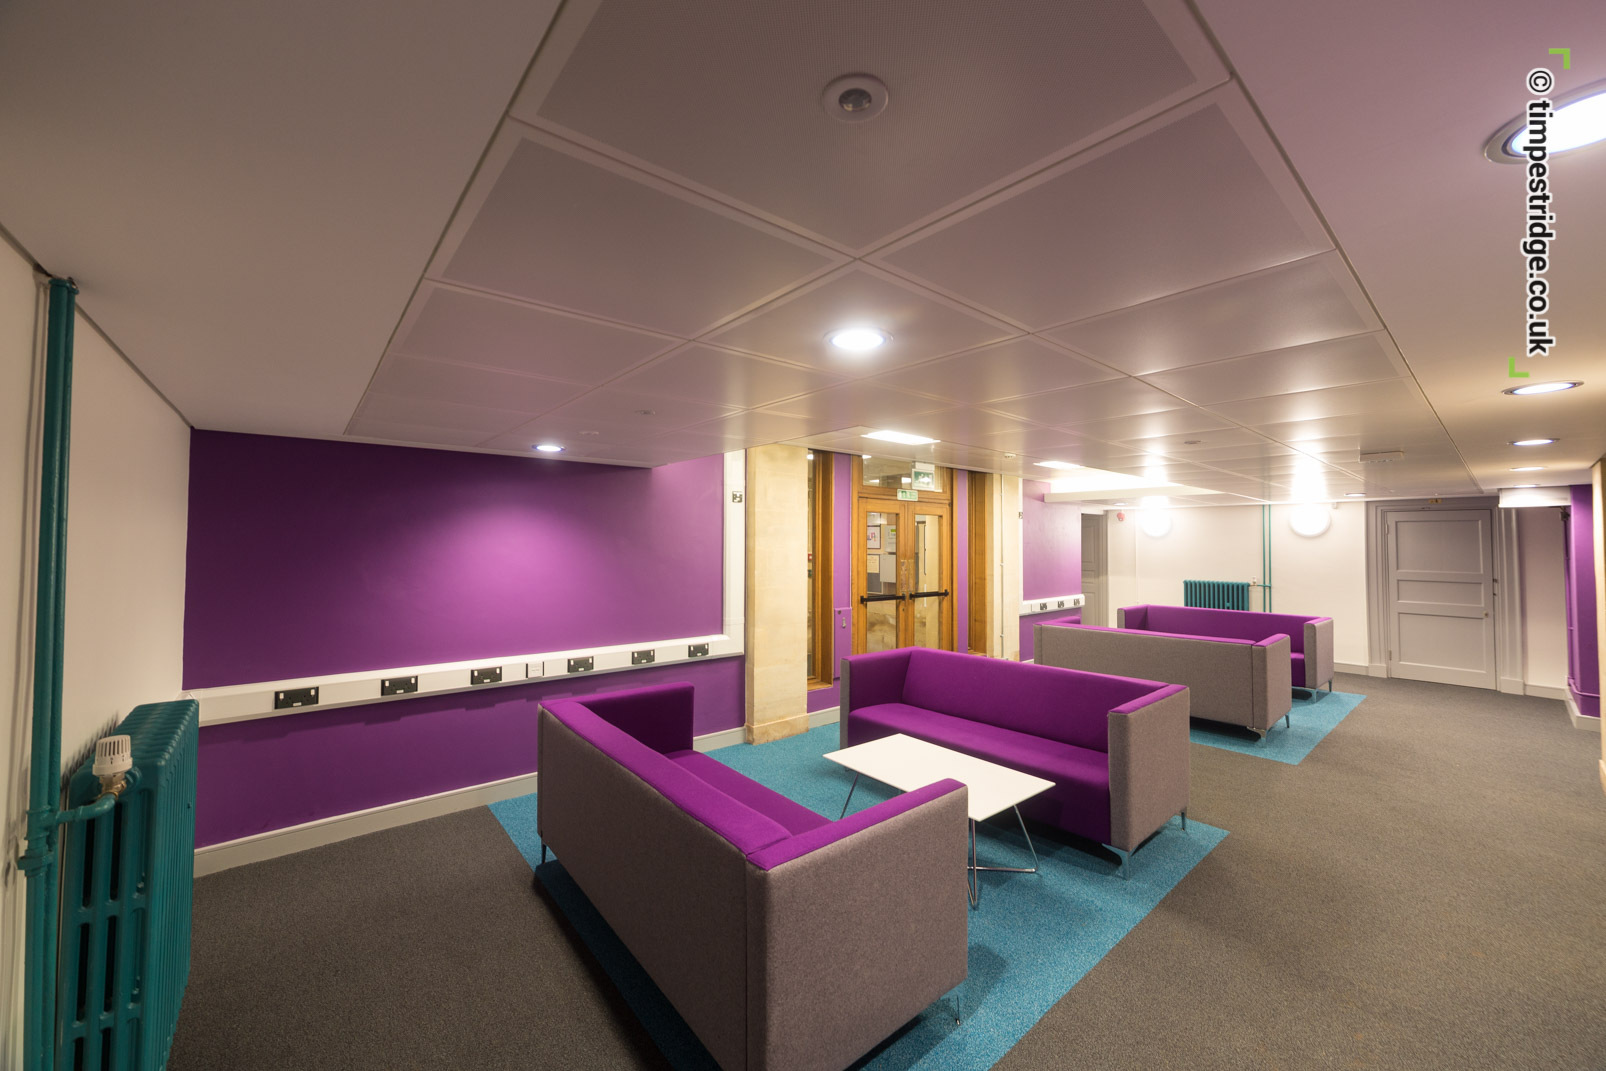 Atkins interior design at University of Exeter